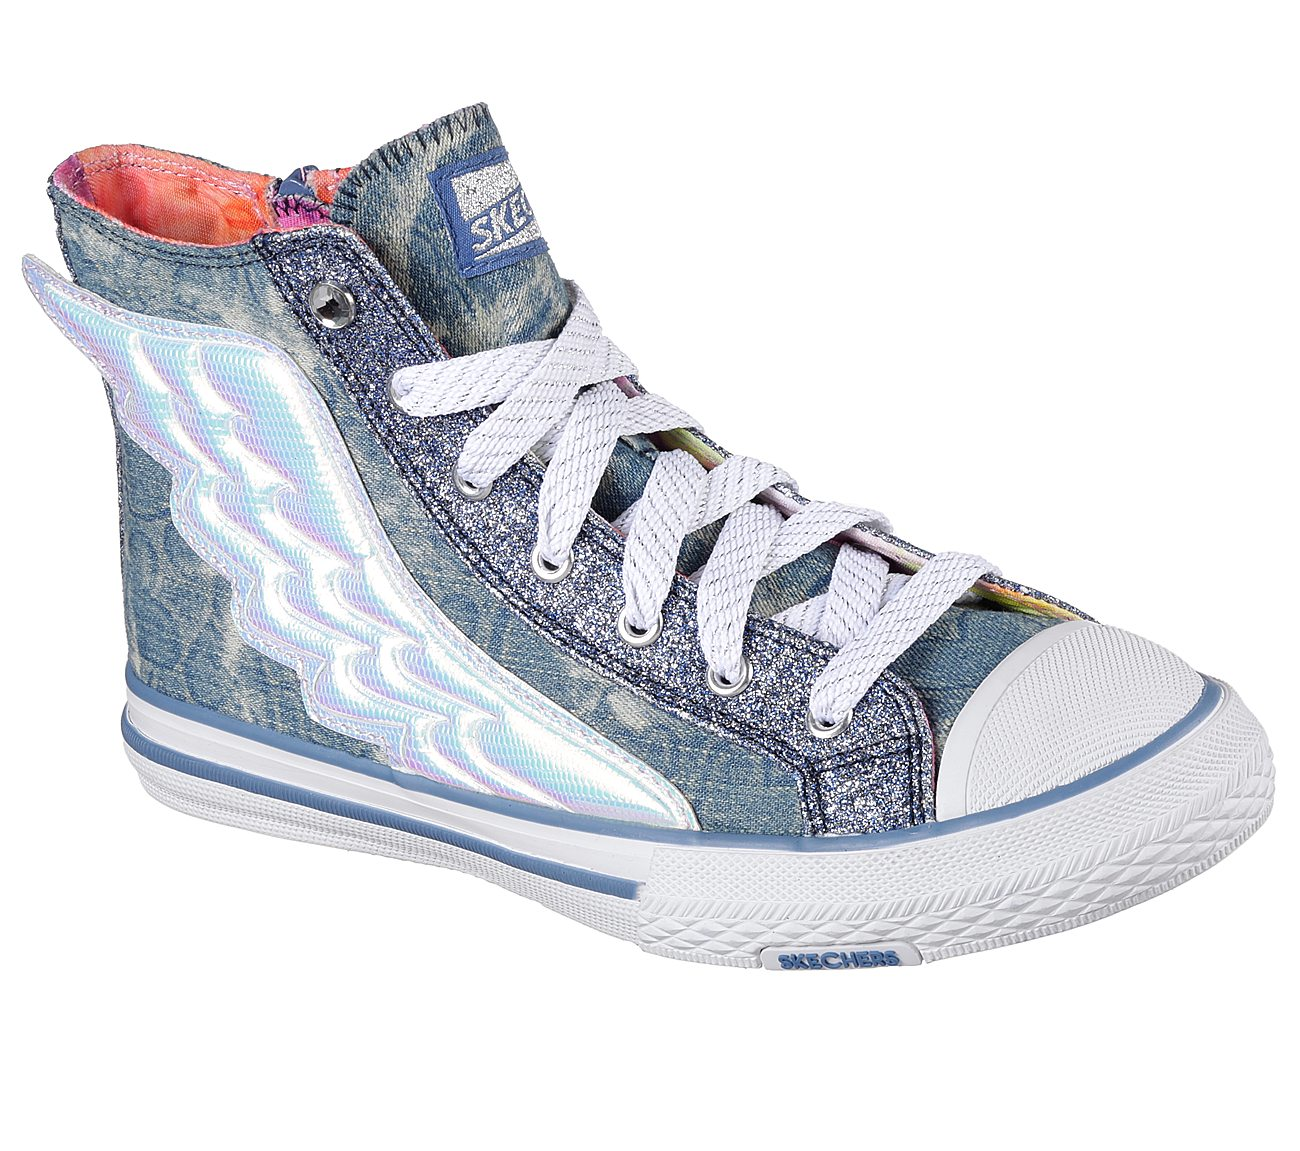 774b175e285ab Buy SKECHERS Utopia - Wing It Originals Shoes only $35.00